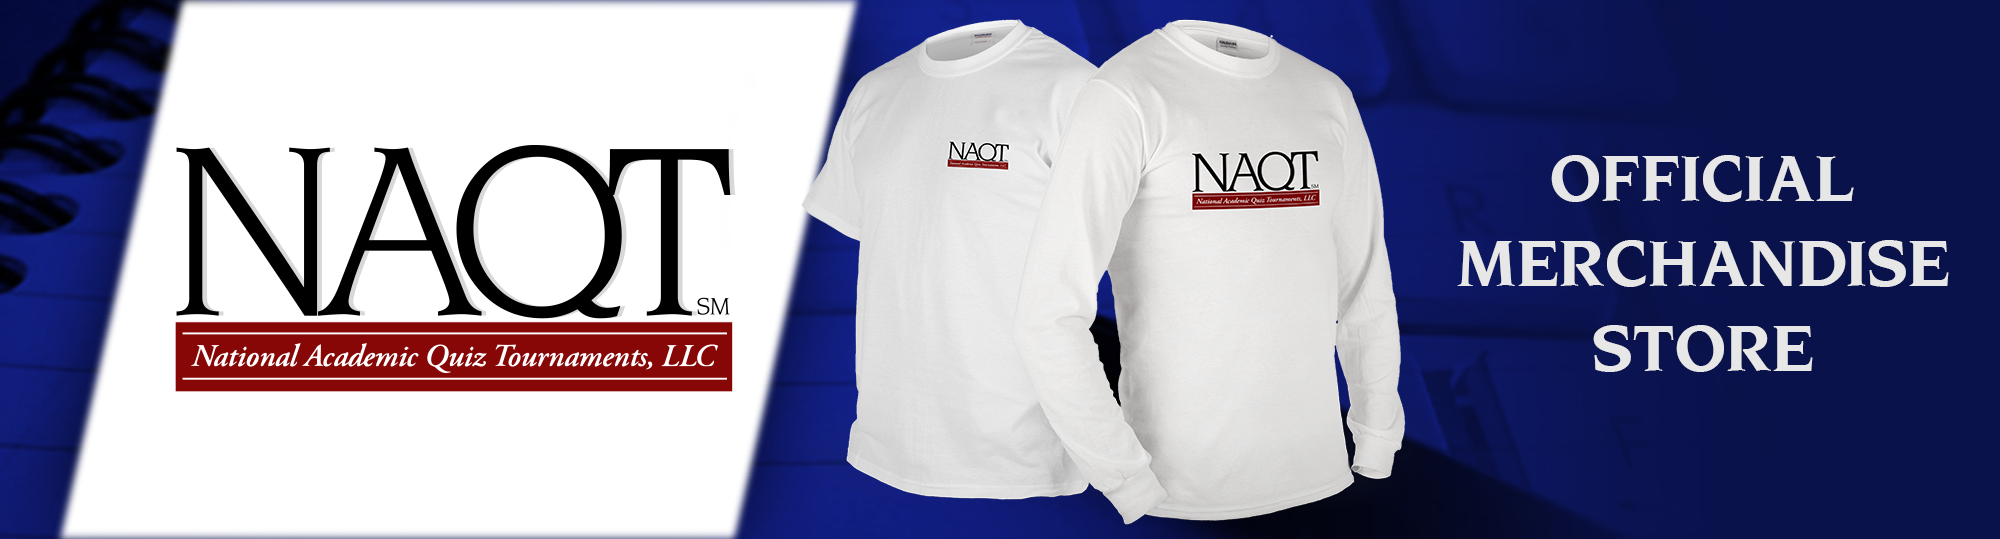 NAQT Official Merchandise